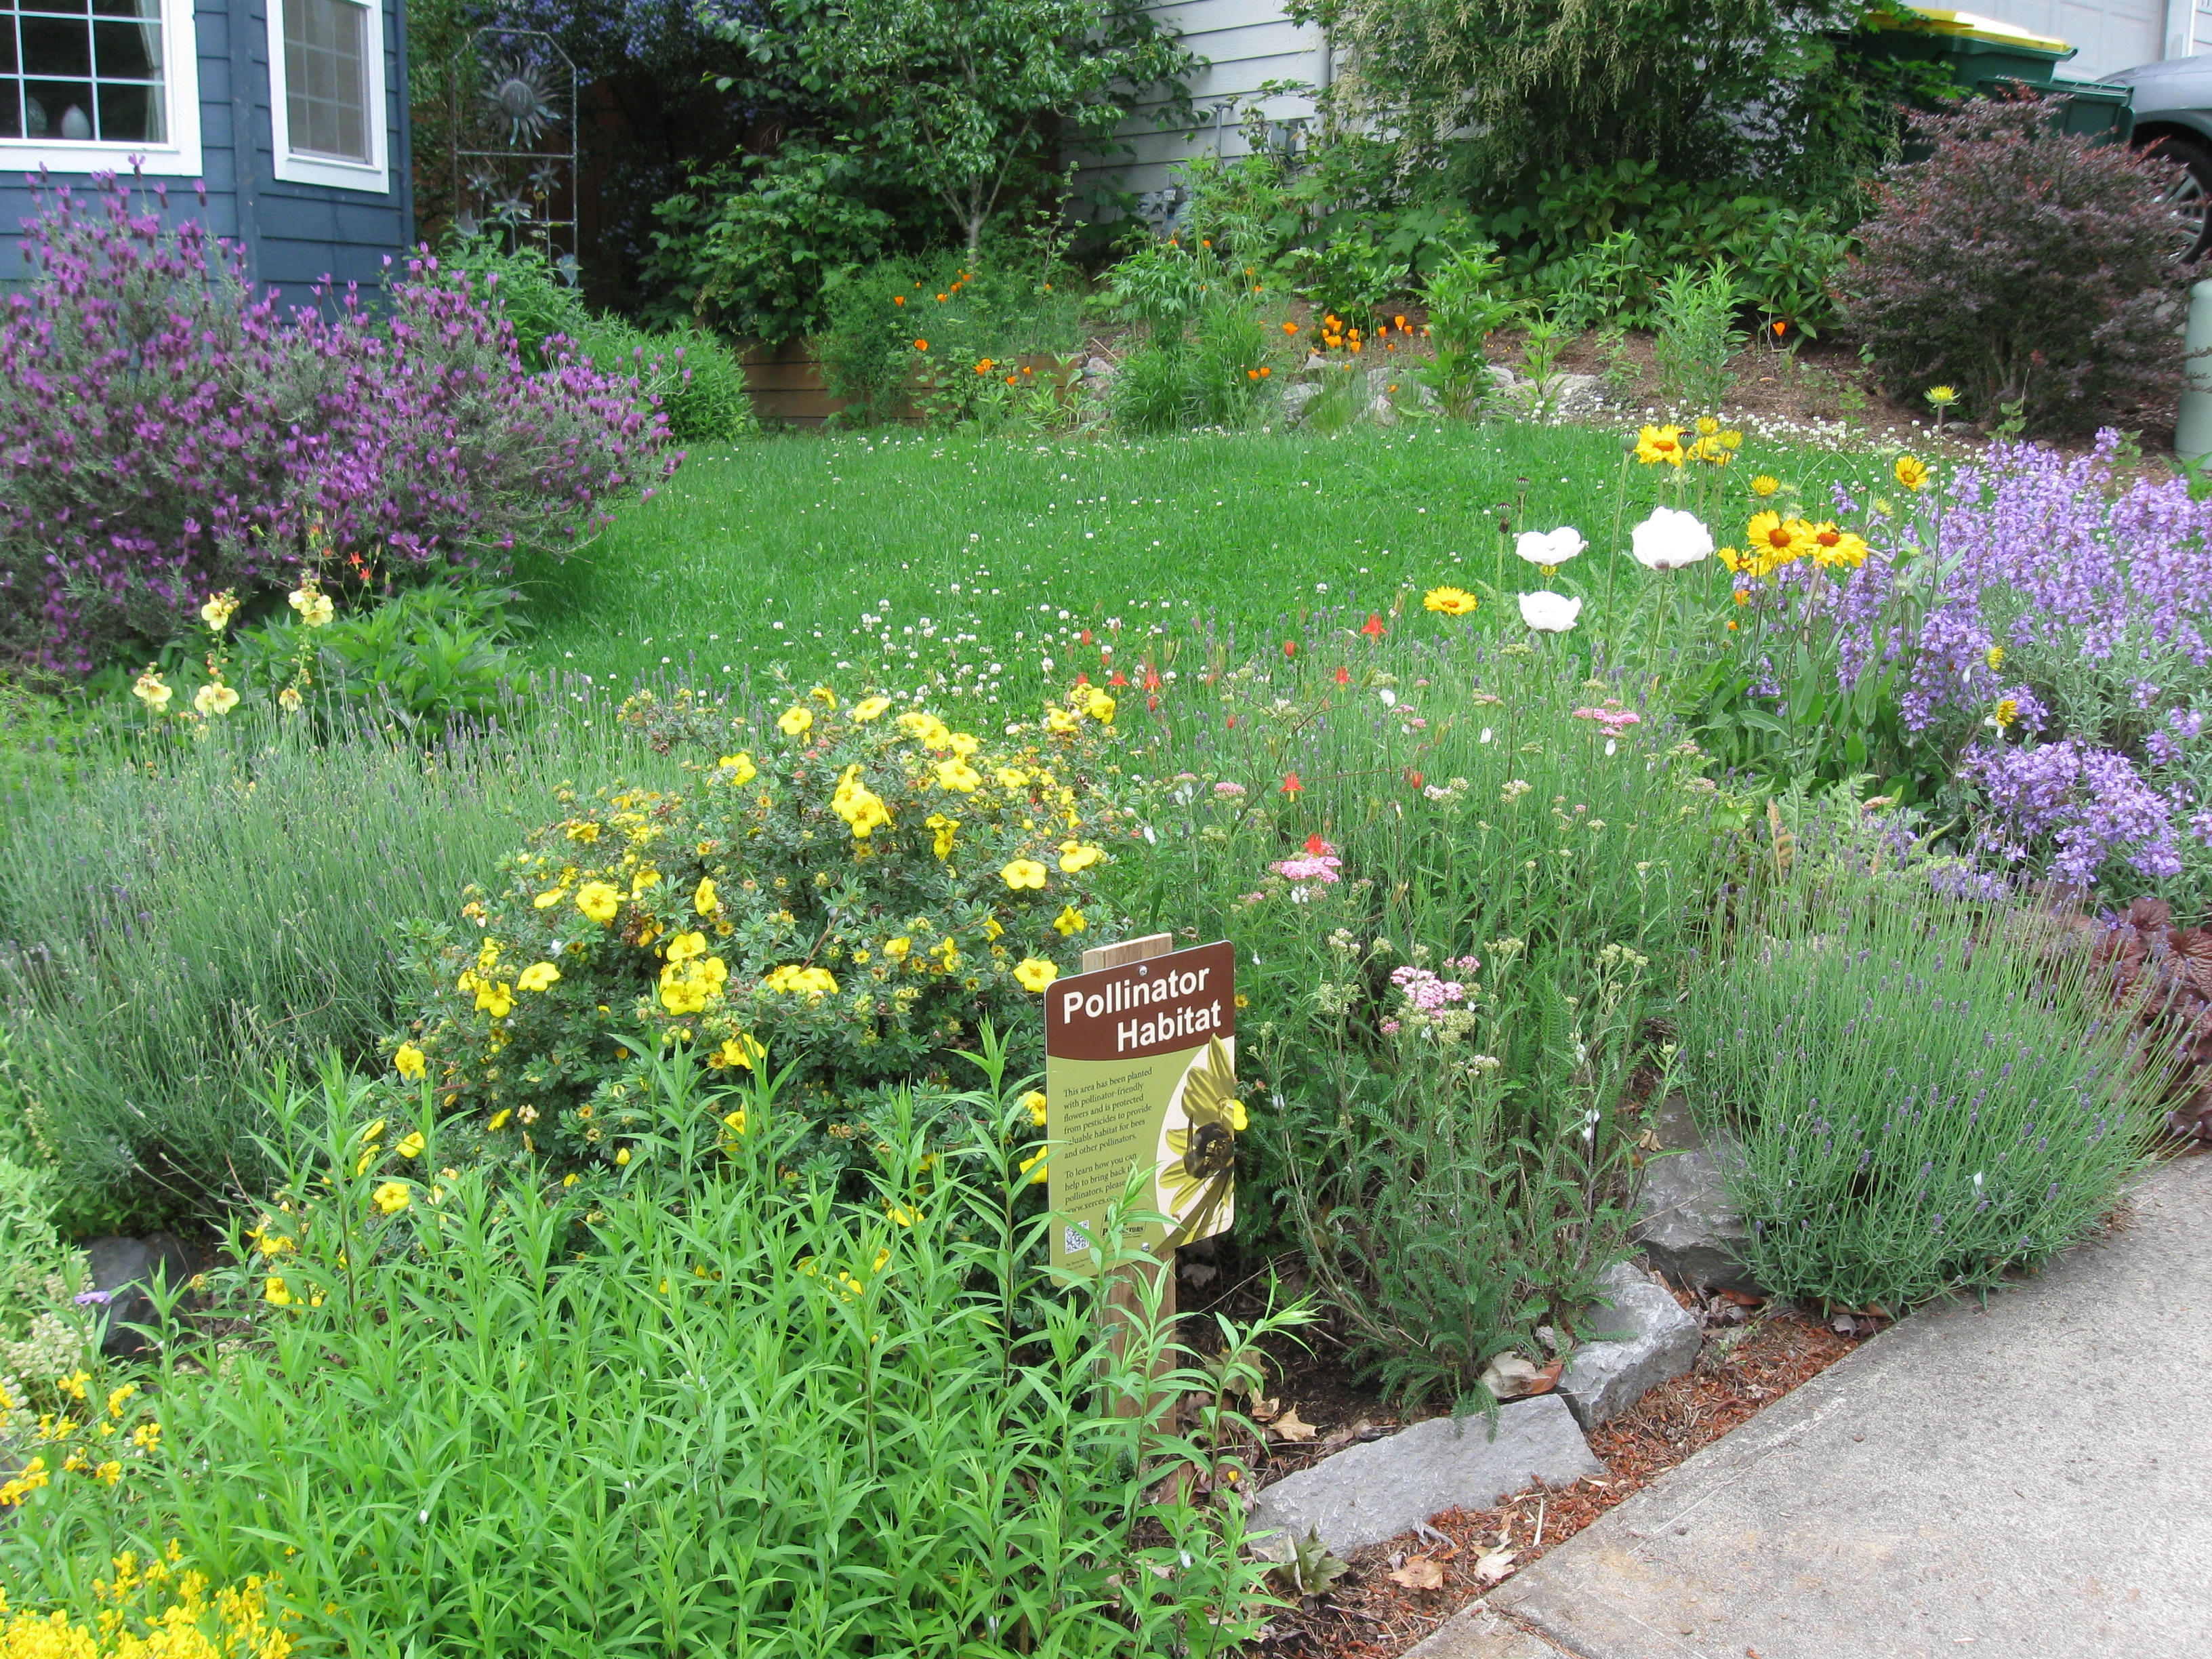 A pollinator habitat sign standing among an abundance of flowers in a suburban front yard.